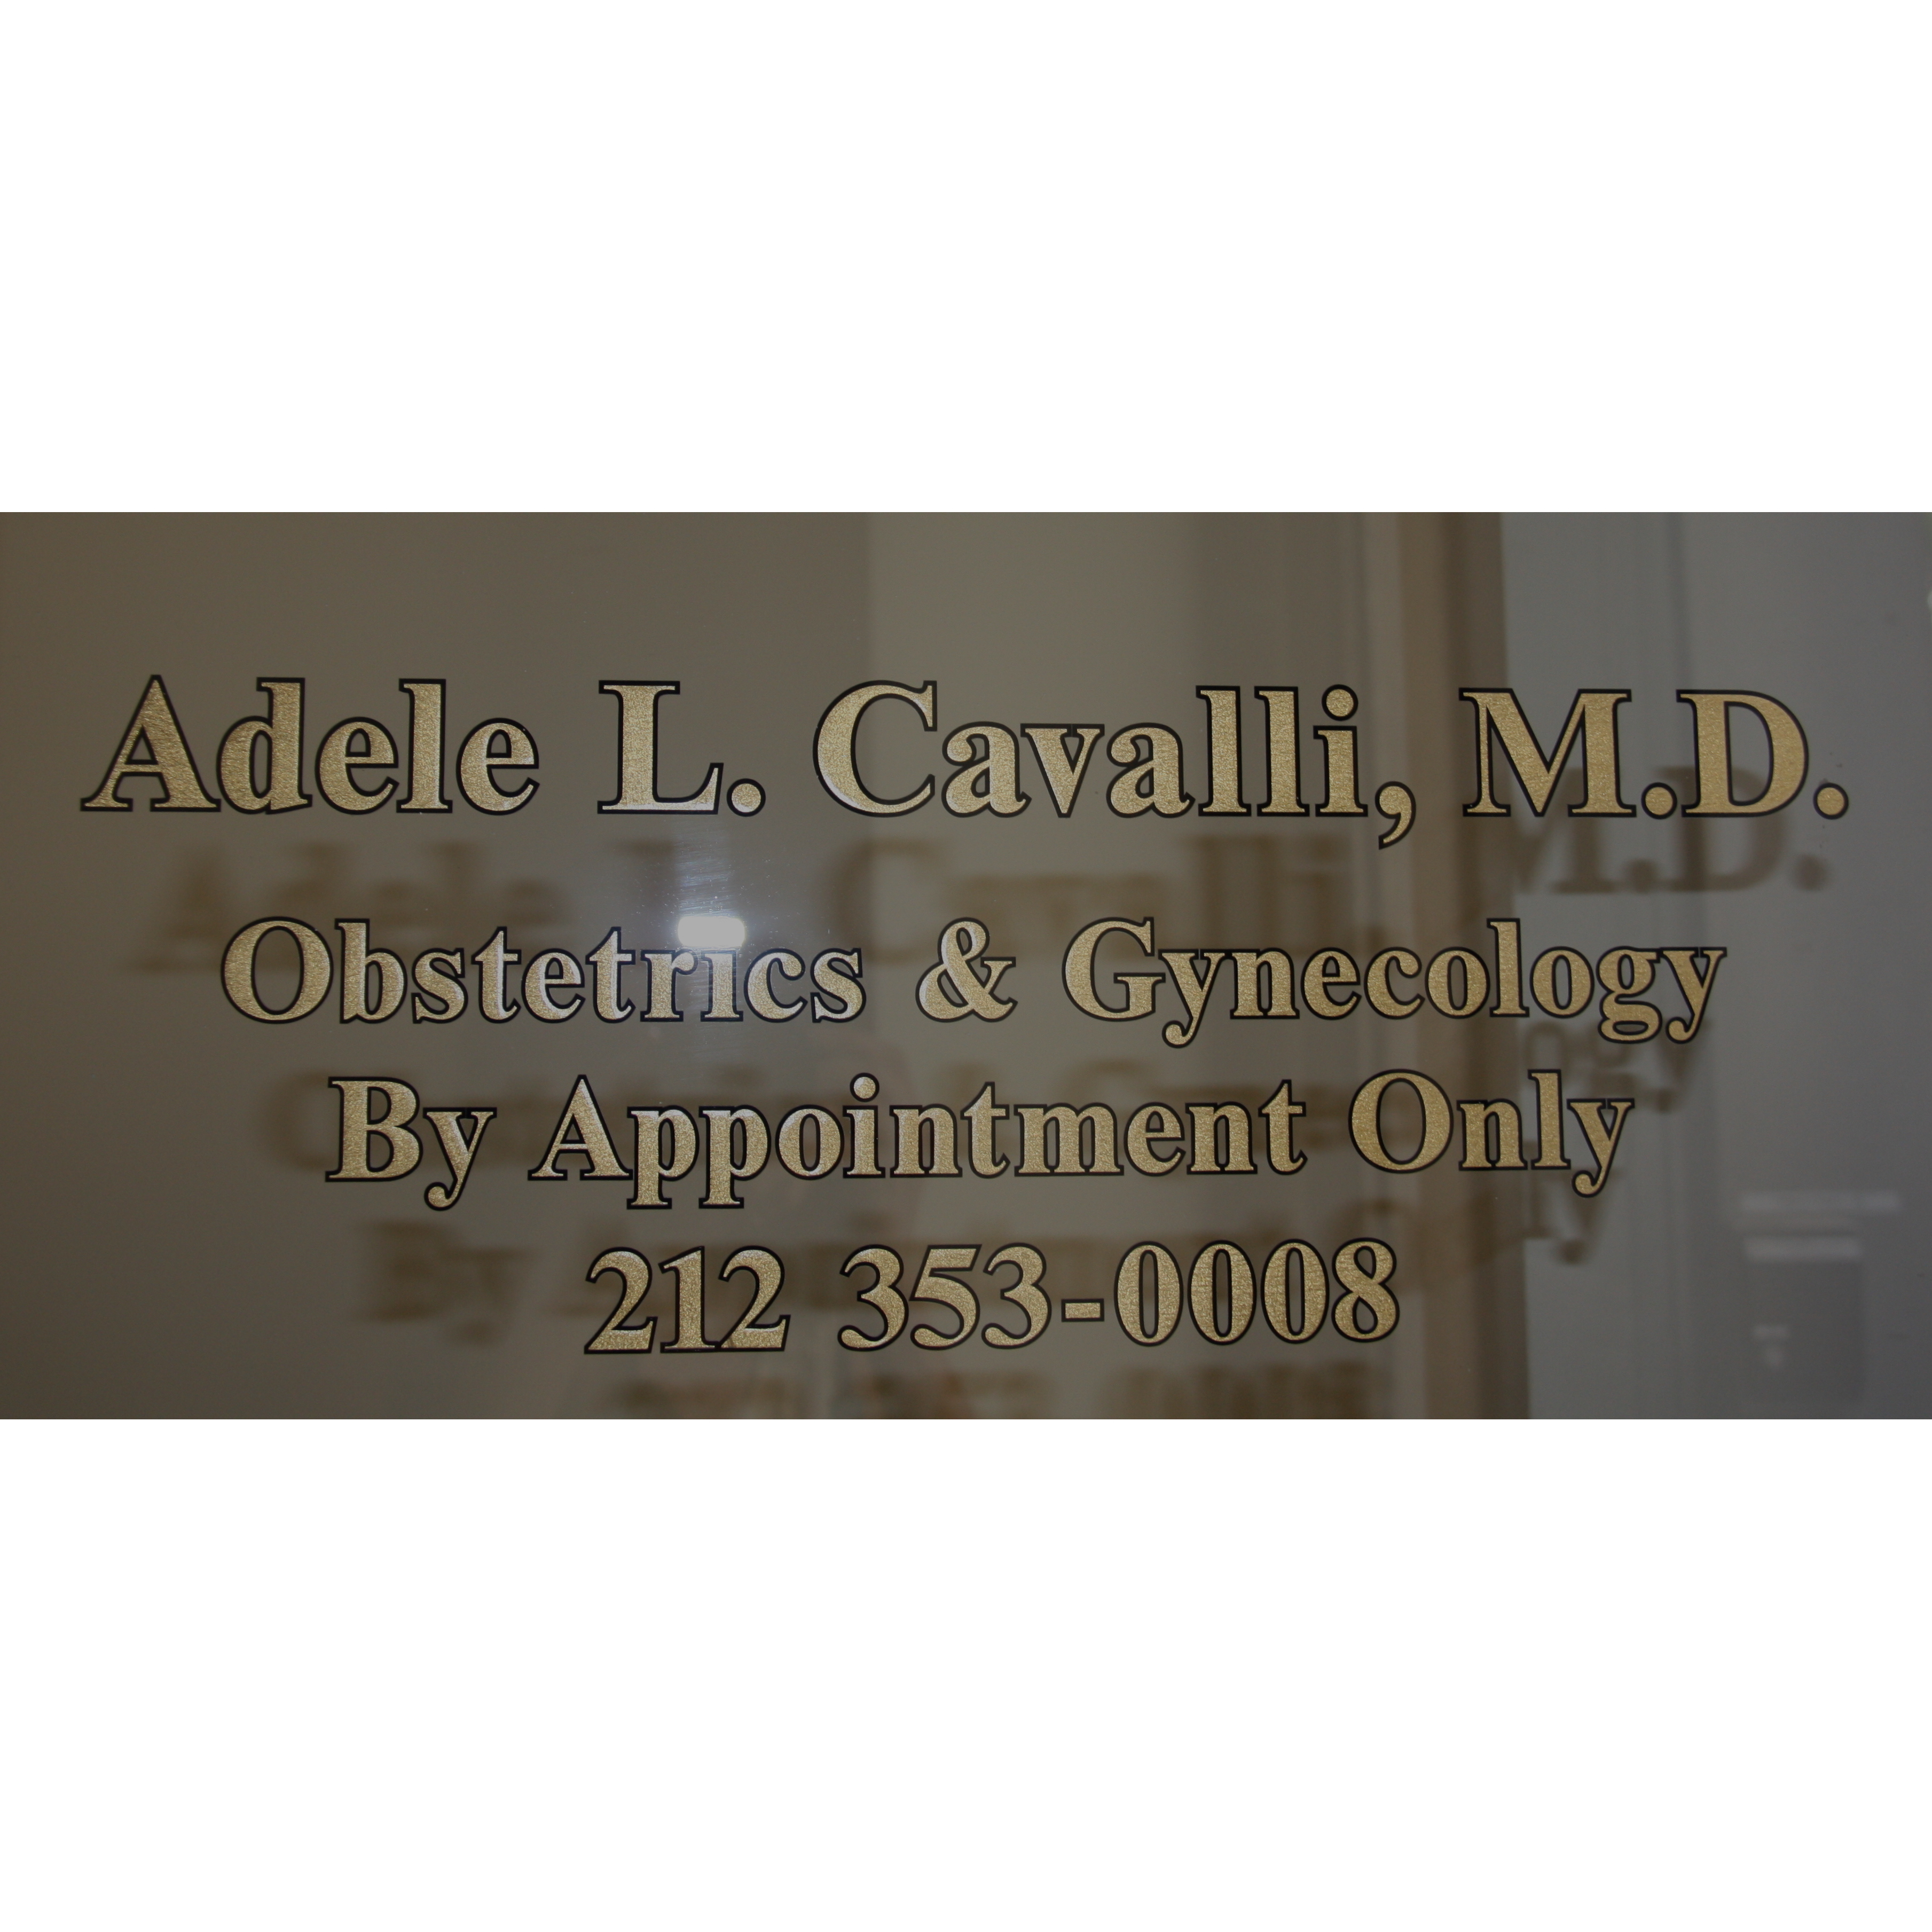 Adele l cavalli md coupons near me in new york 8coupons for Adele salon services